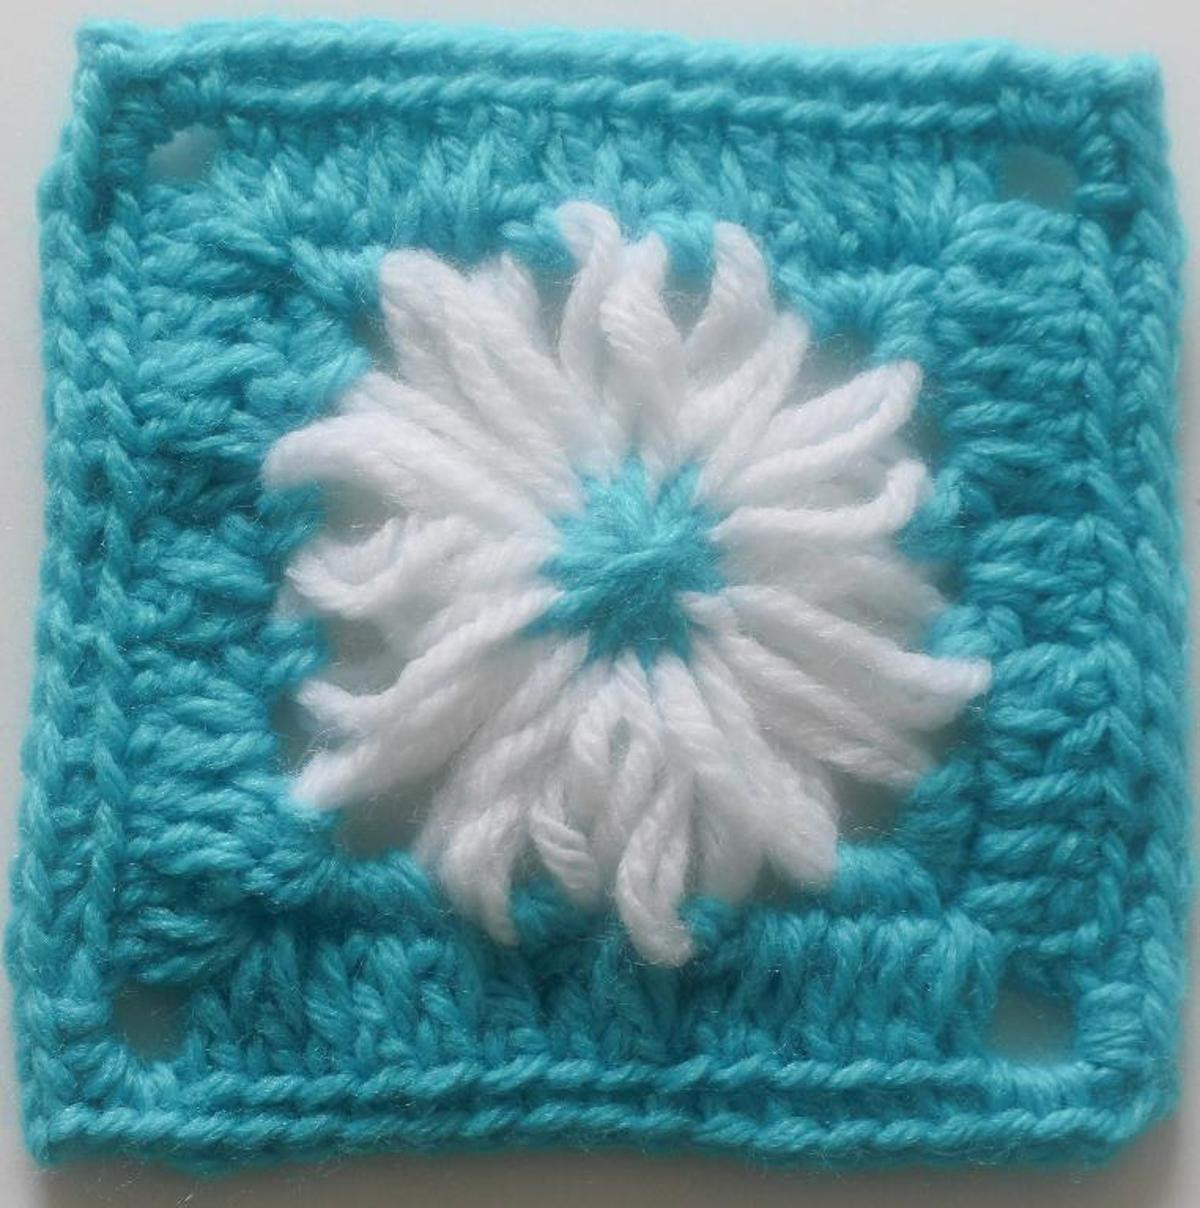 Crochet Squares New 10 Flower Granny Square Crochet Patterns to Stitch Of Charming 43 Ideas Crochet Squares